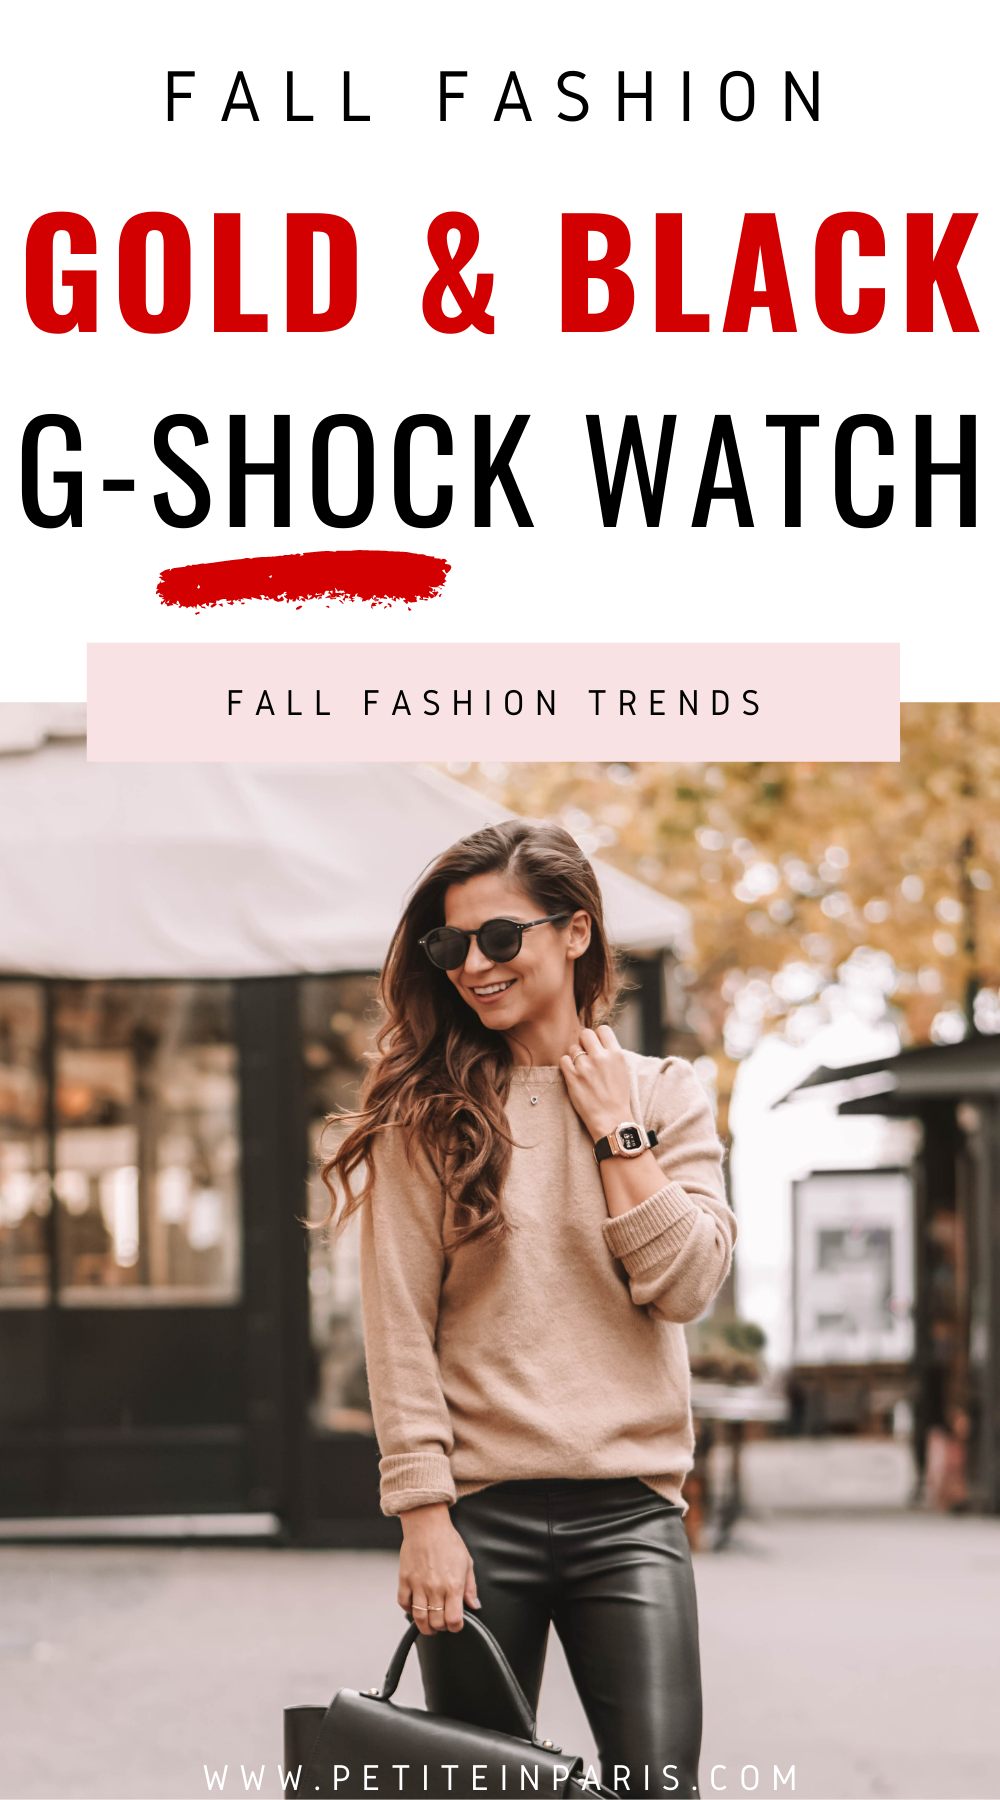 Learn more at gshock.com